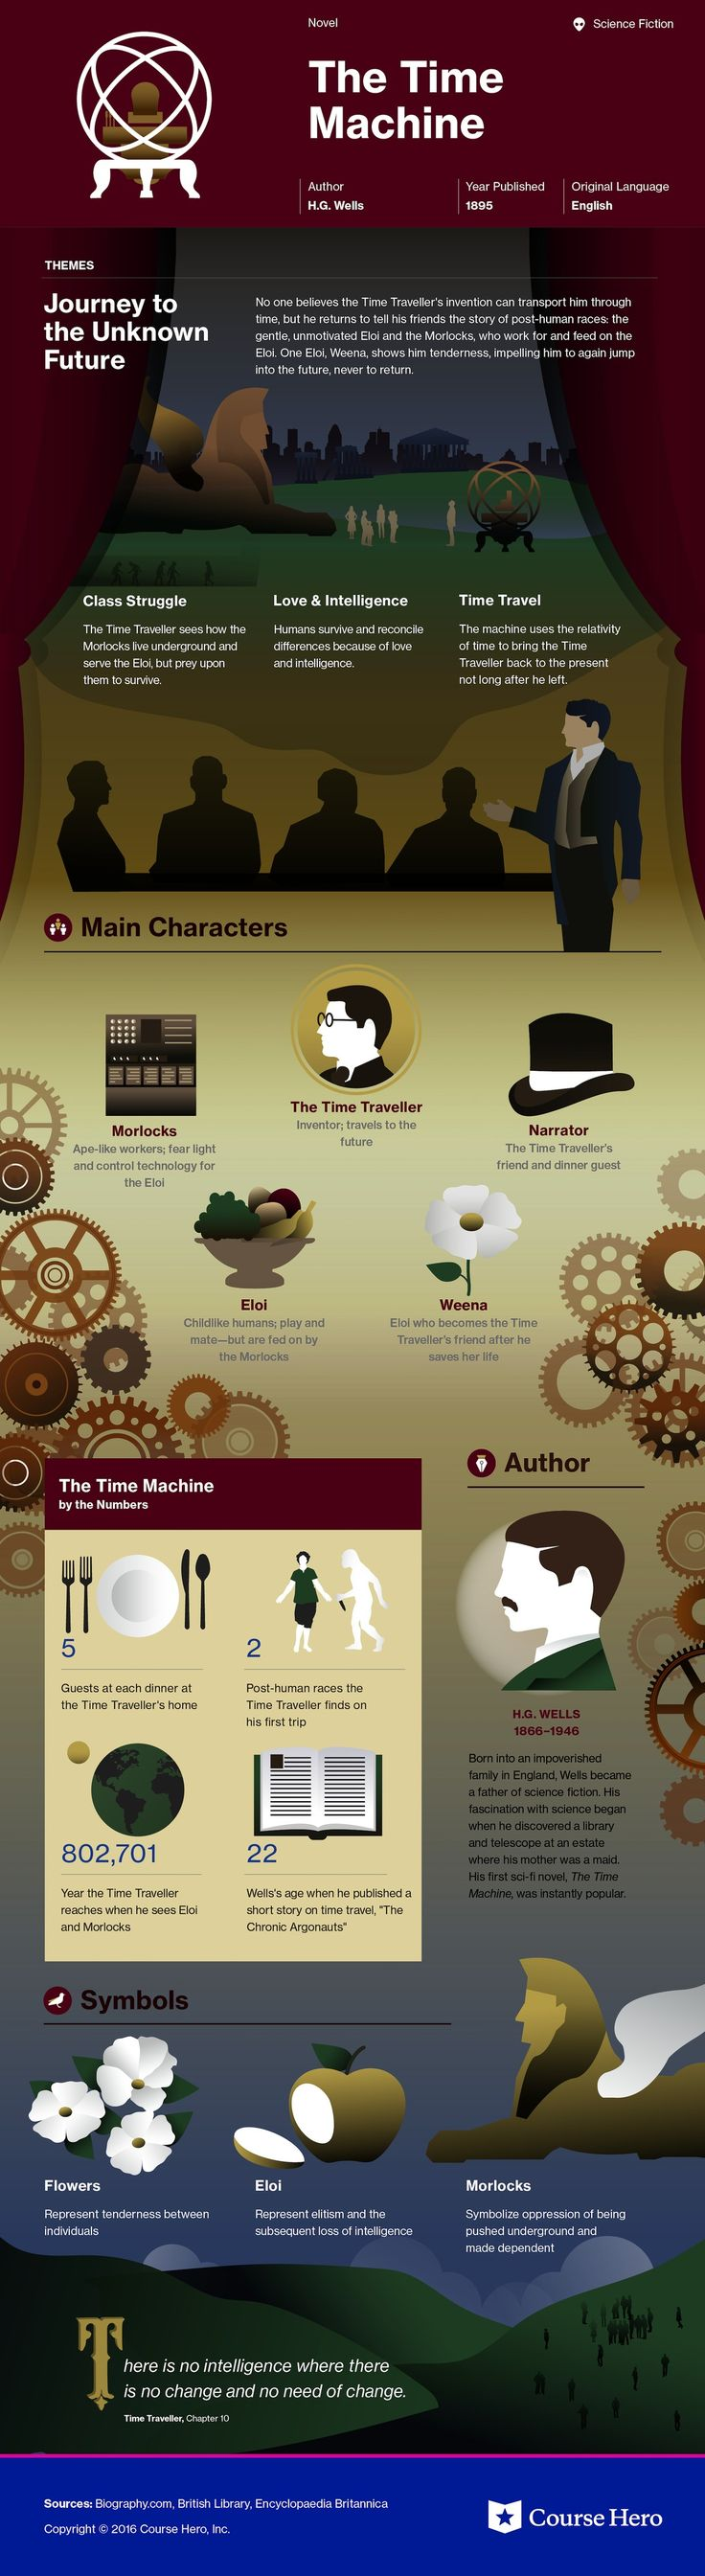 The Time Machine infographic